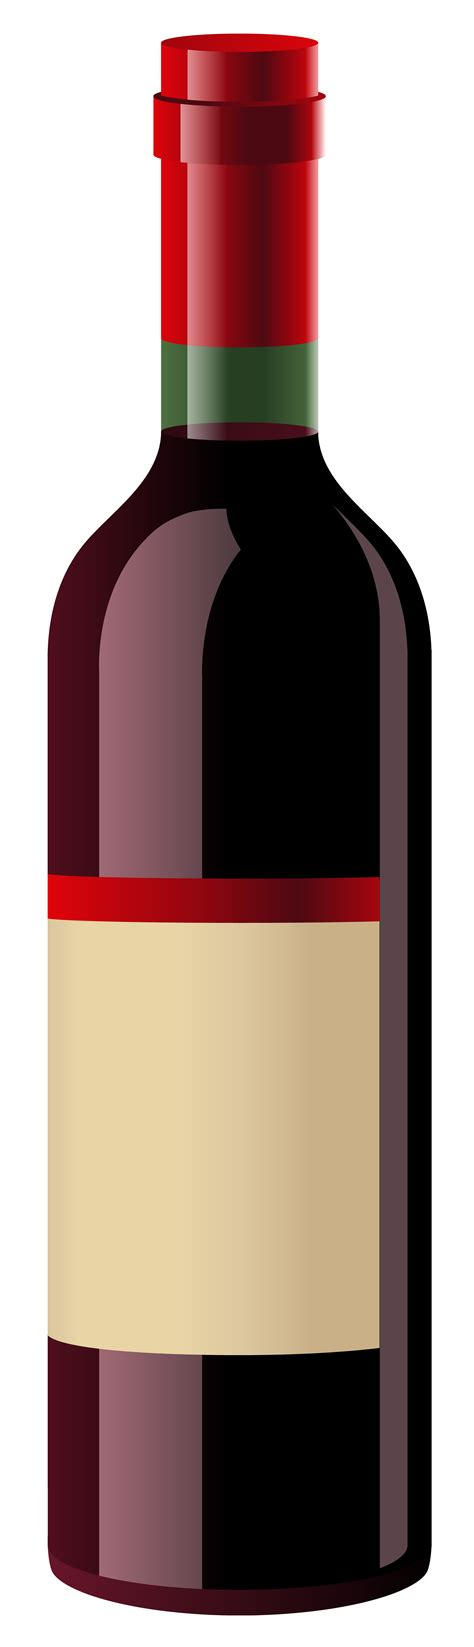 red bottle red wine bottle png www pixshark com images galleries